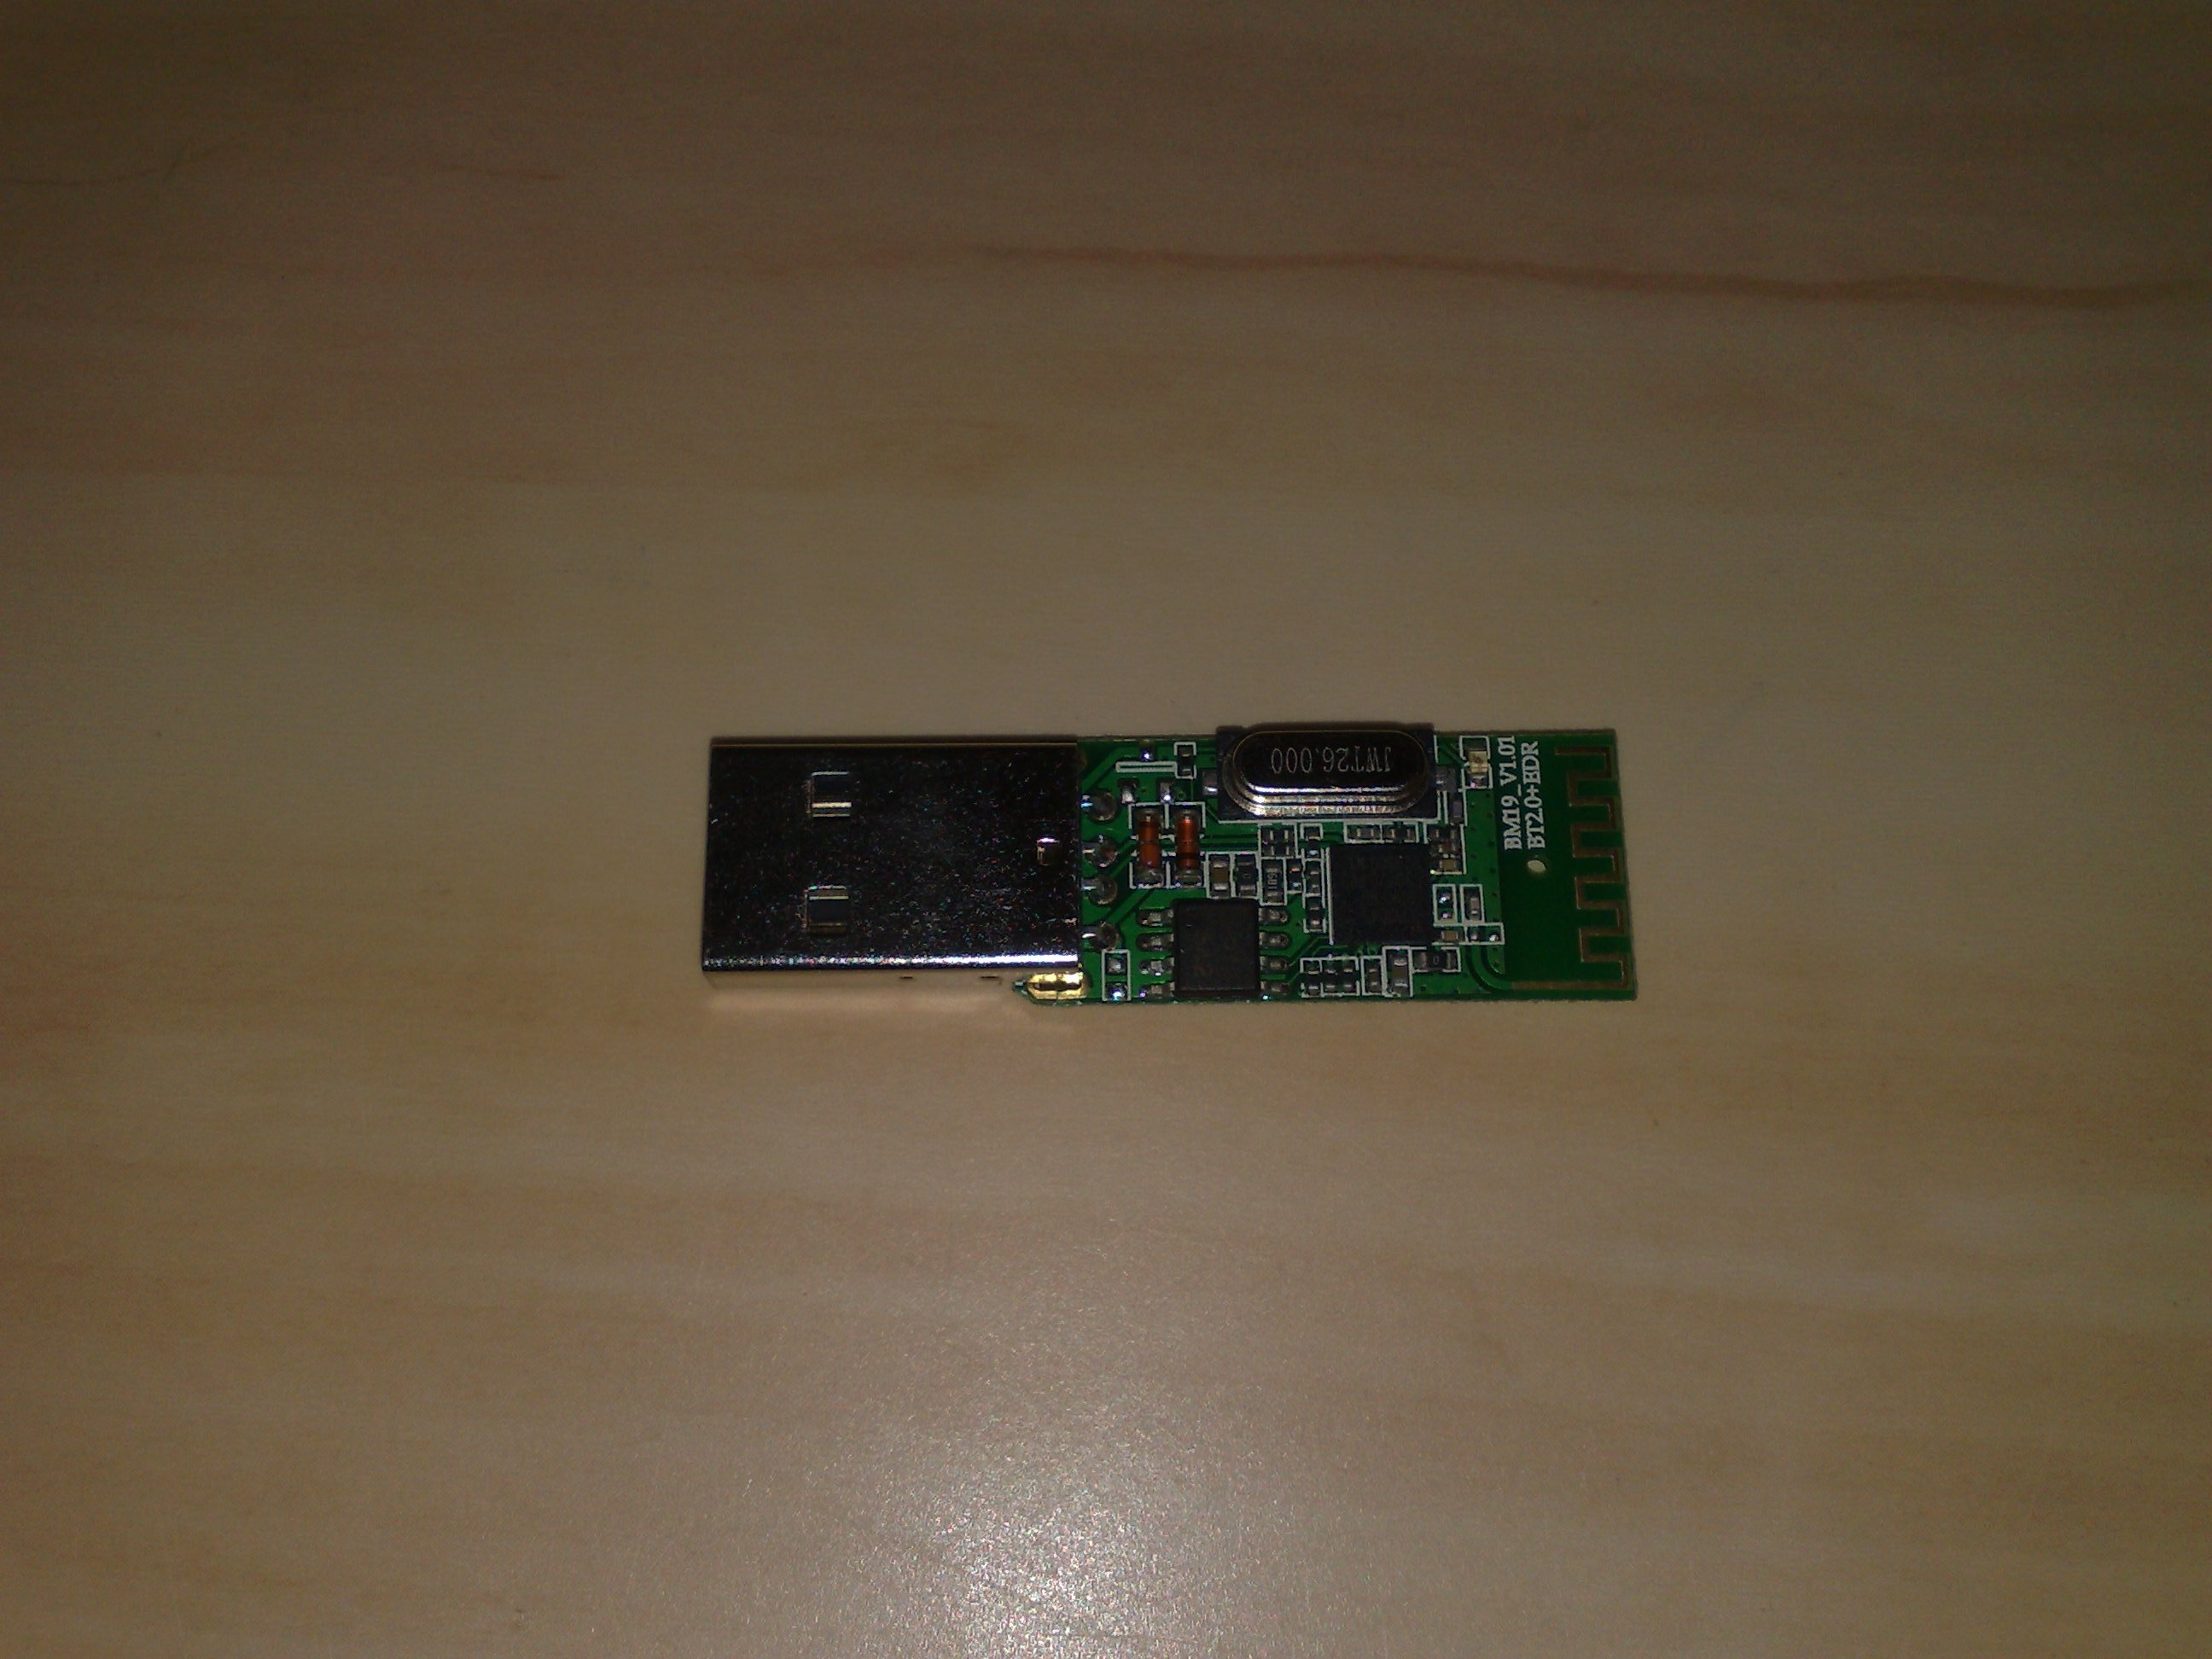 Broadcom Bluetooth Dongle Circuit